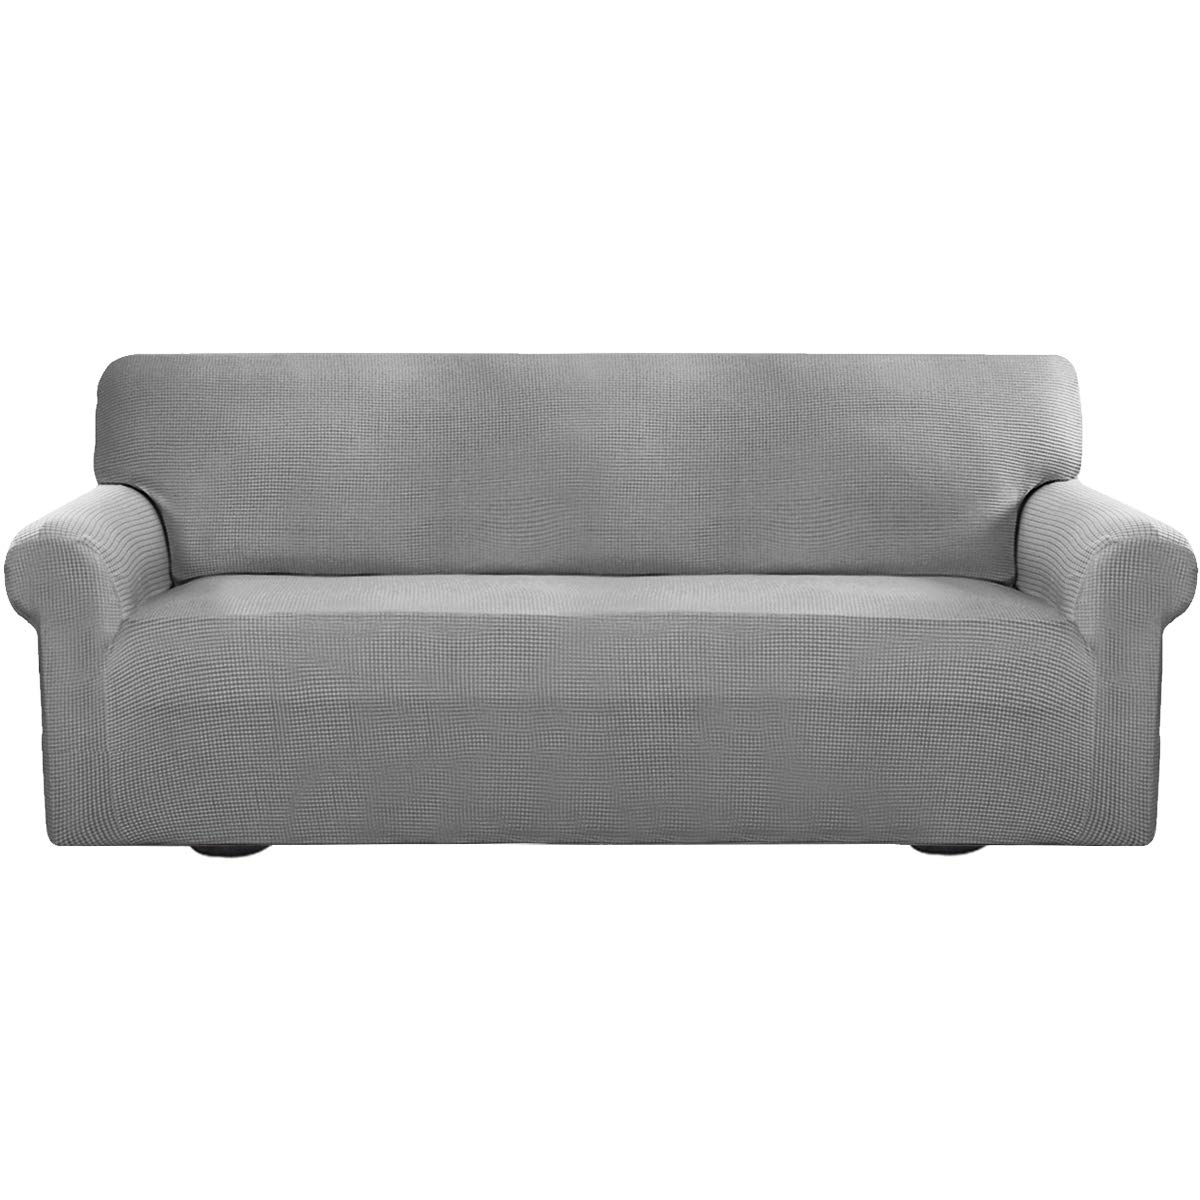 Easy going stretch slipcovers sofa covers furniture protector with elastic bottom anti slip foams couch shield polyester spandex jacquard fabric small